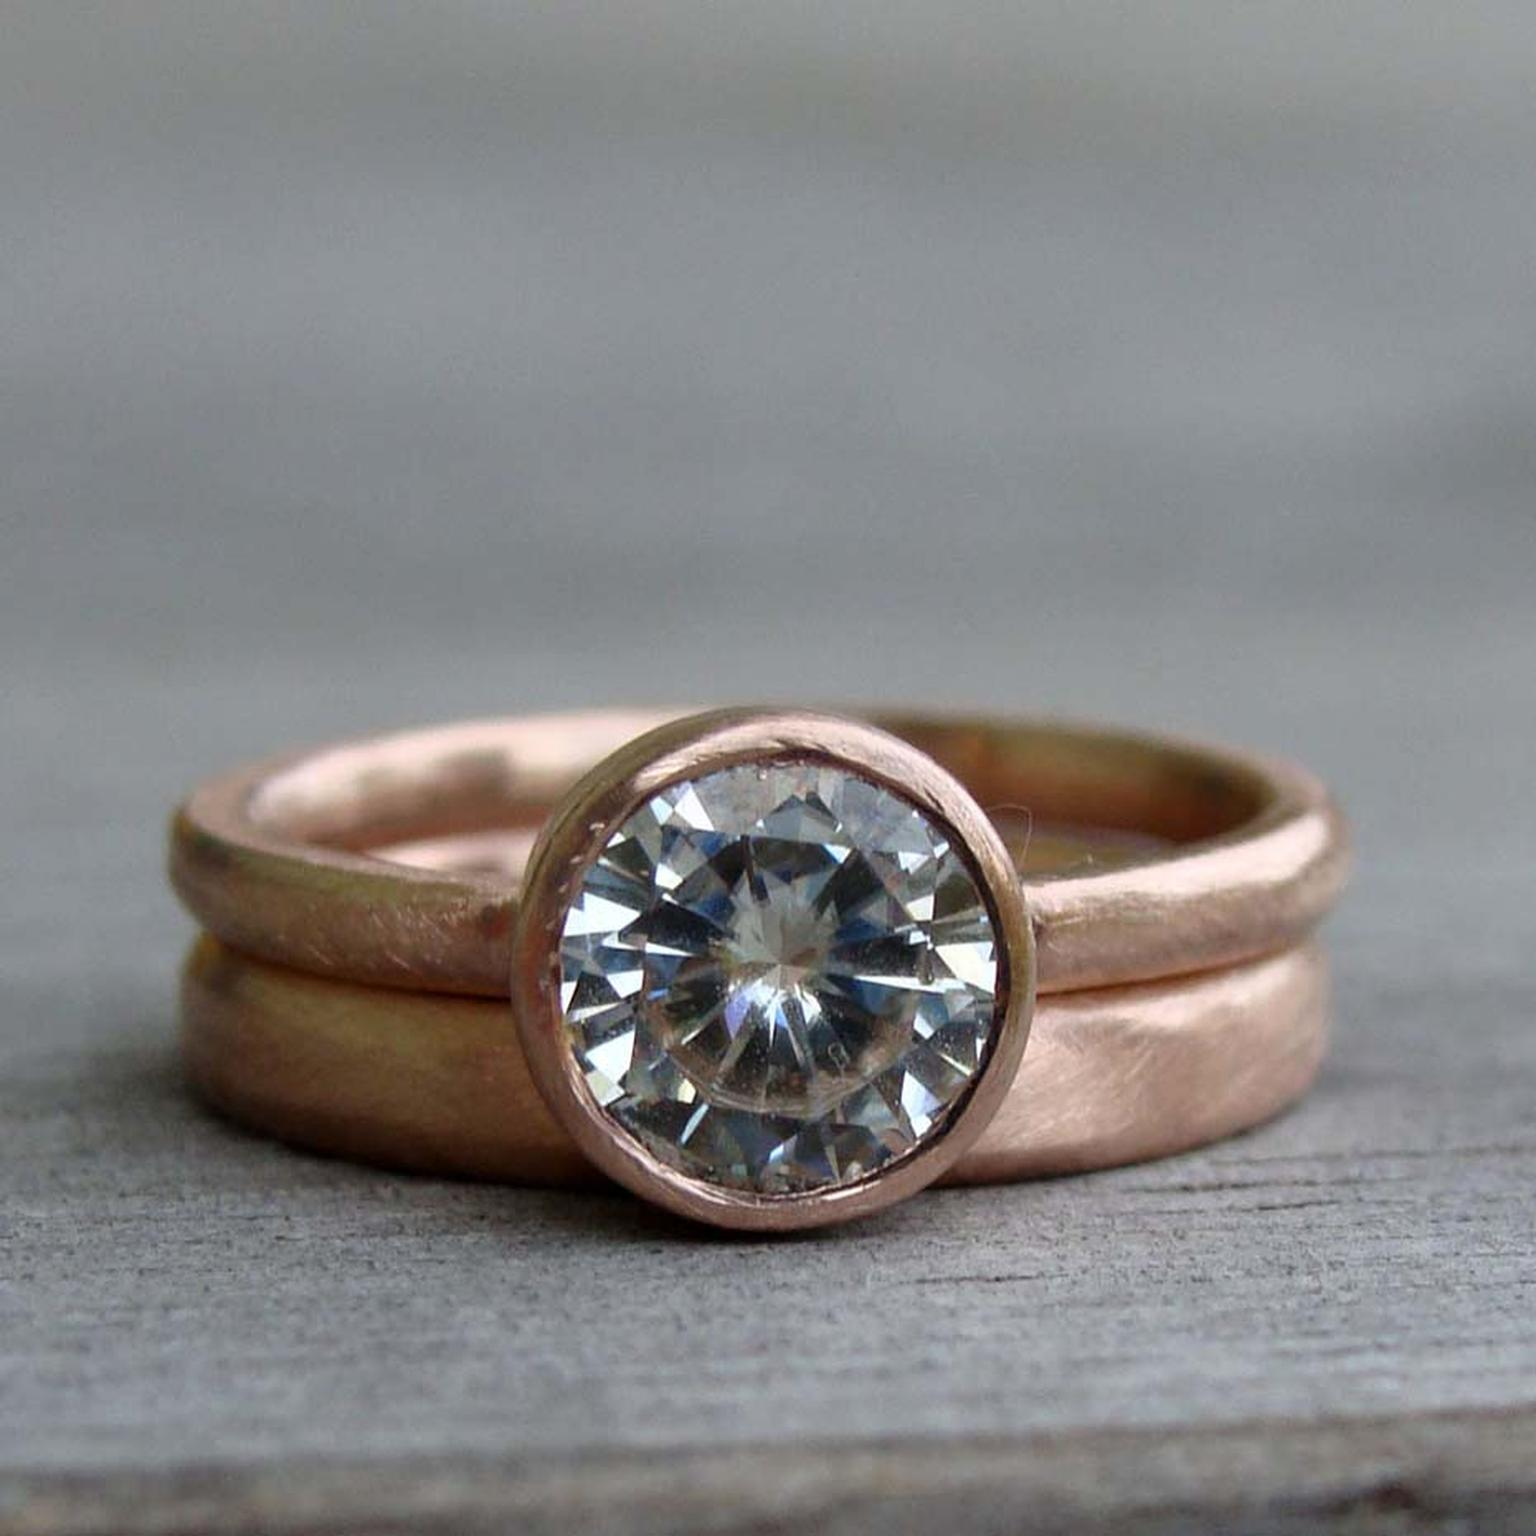 McFarland Designs engagement ring featuring a Forever Brilliant Moissanite stone with a recycled rose gold band and matching wedding ring.